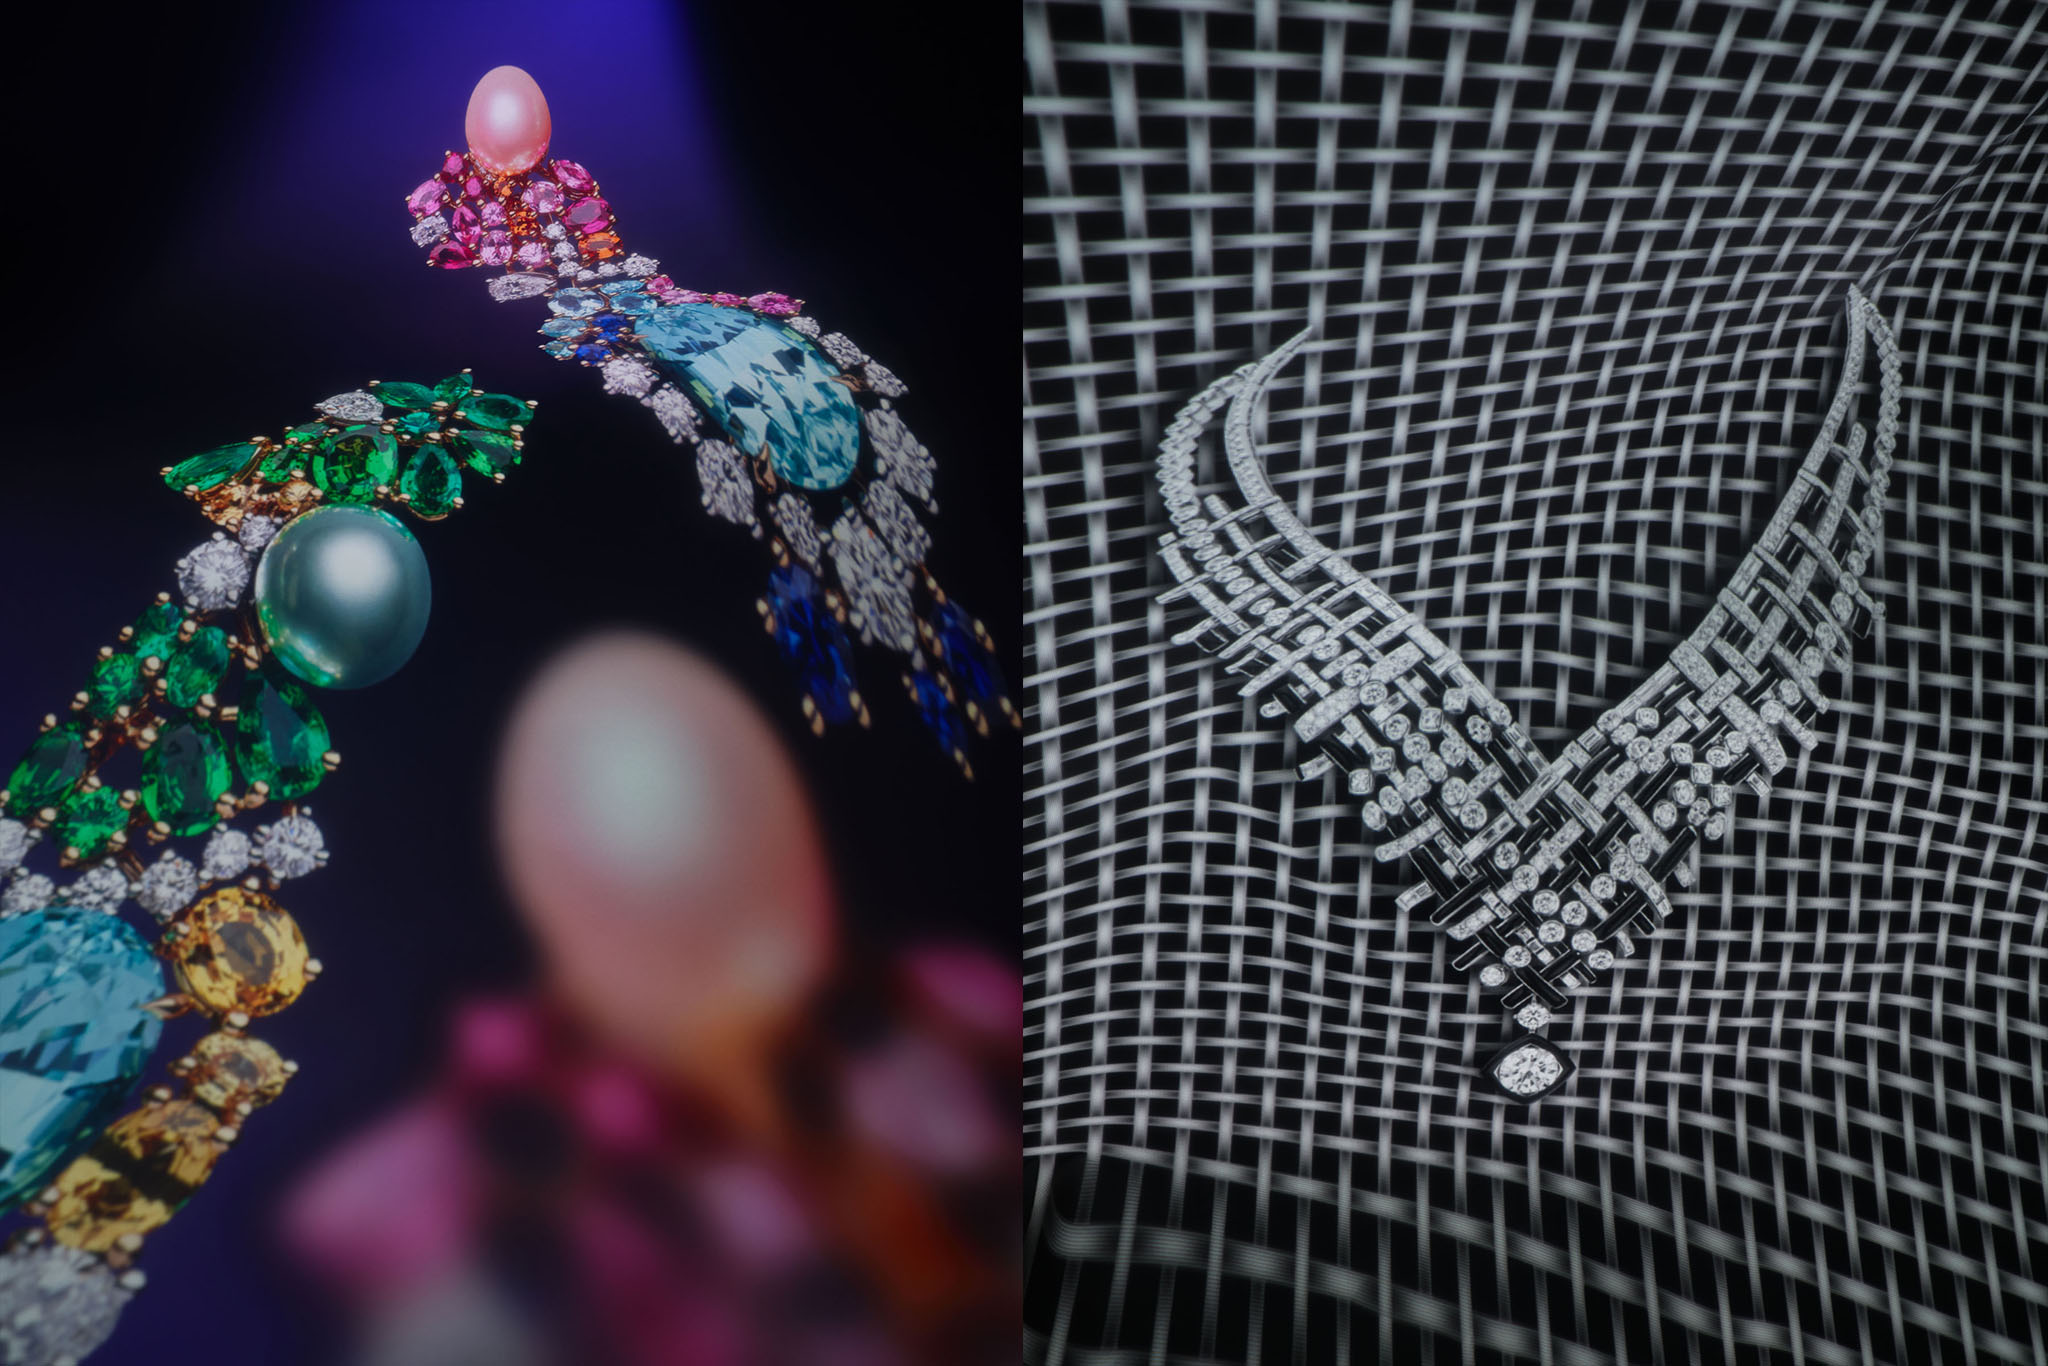 L: Dior Fine JewelryÕs yellow gold, white gold, platinum, diamonds, blue tourmaline, pink cultured pearl, rubies, sapphires, emeralds, yellow and pink sapphires, spessartite garnets, Paraiba-type tourmalines and tsavorite garnets tie and bow earrings.R: Chanel High JewelryÕs tweed graphique necklace in white gold, set with onyx and diamonds.